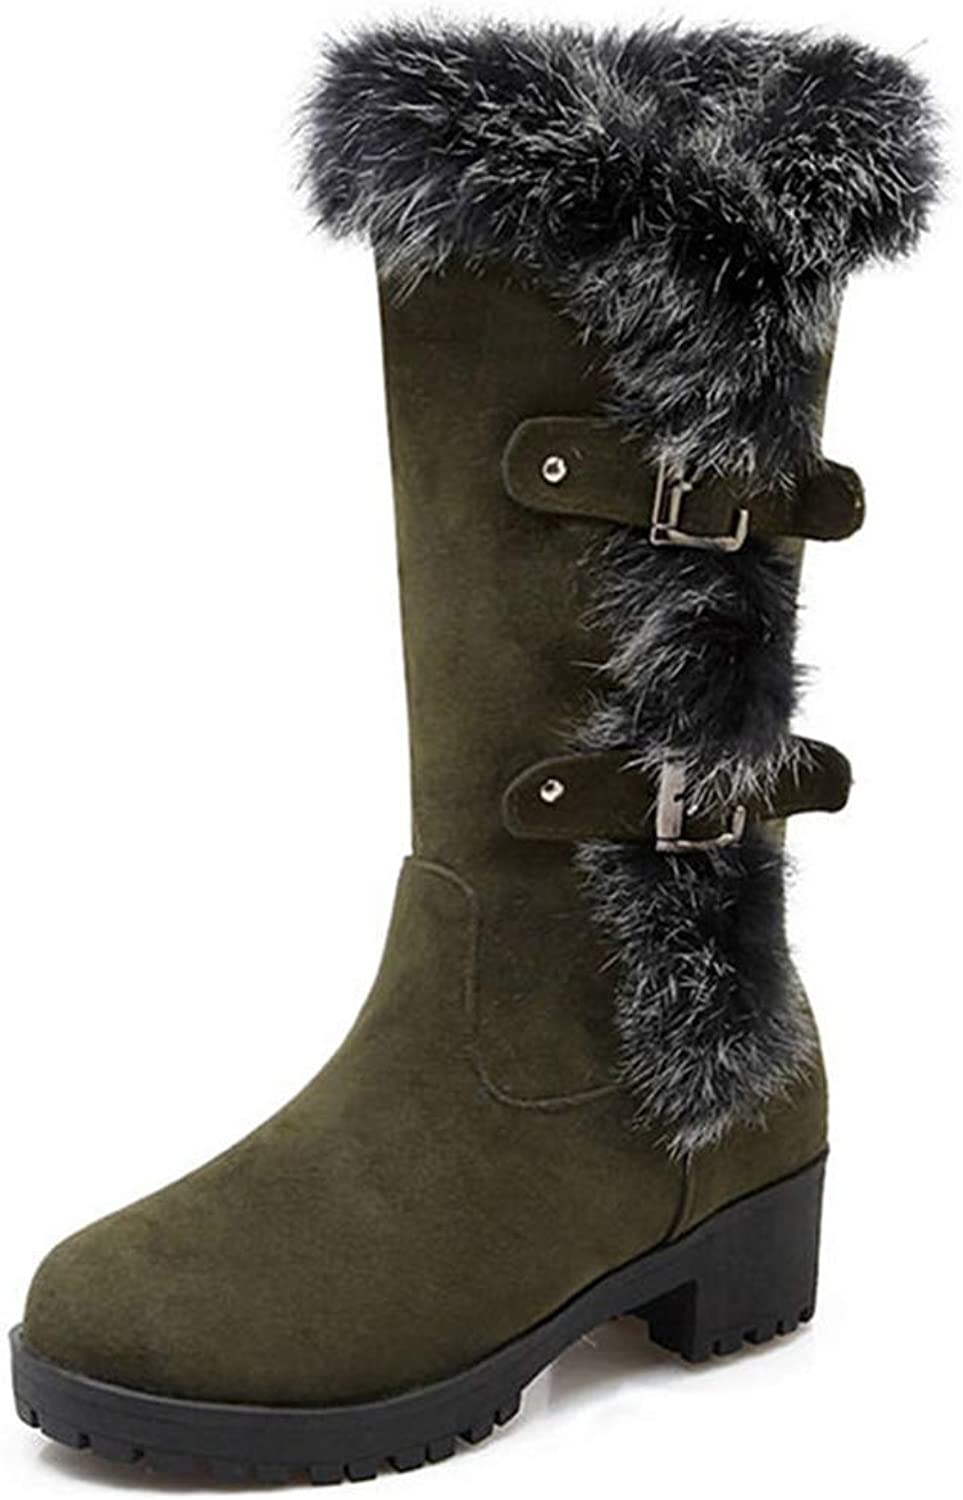 T-JULY Women's Fashion Mid Calf Boots Buckle Fashion Round Toe Comfortable Platform shoes Warm Winter Snow Booties